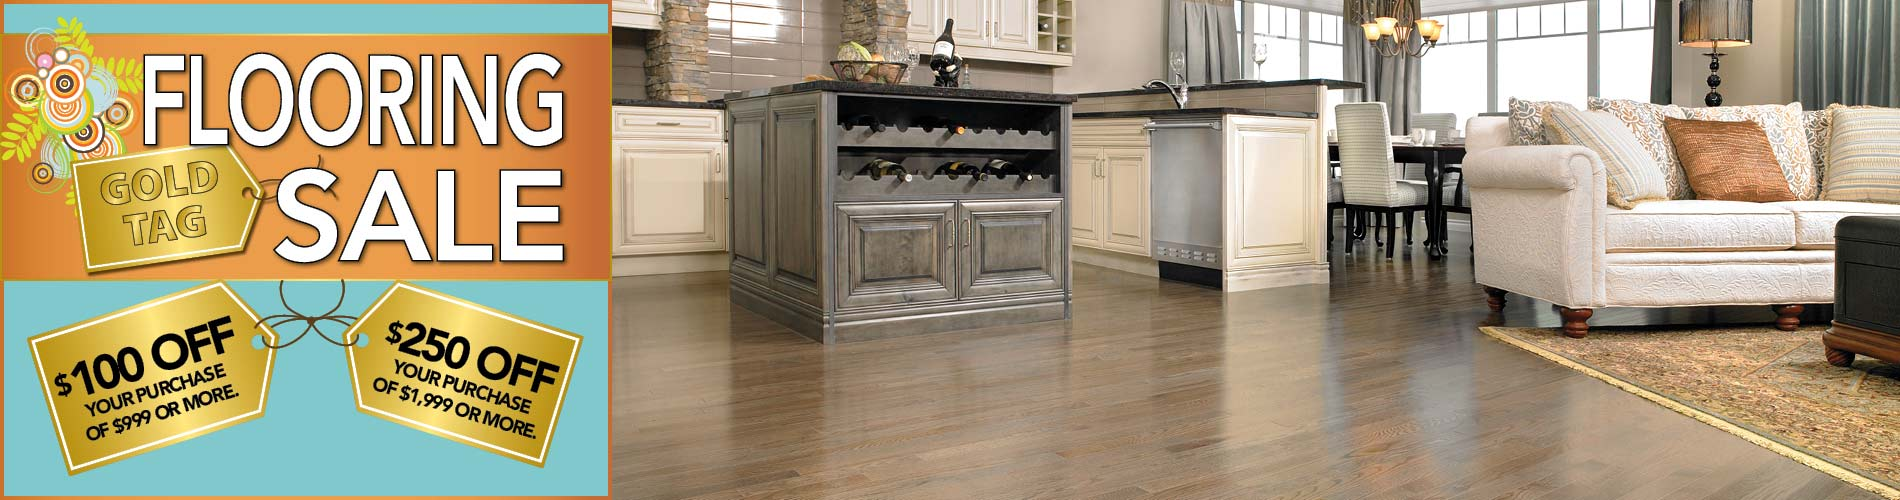 National Gold Tag Flooring Sale at Bendele Abbey in Fort Myers